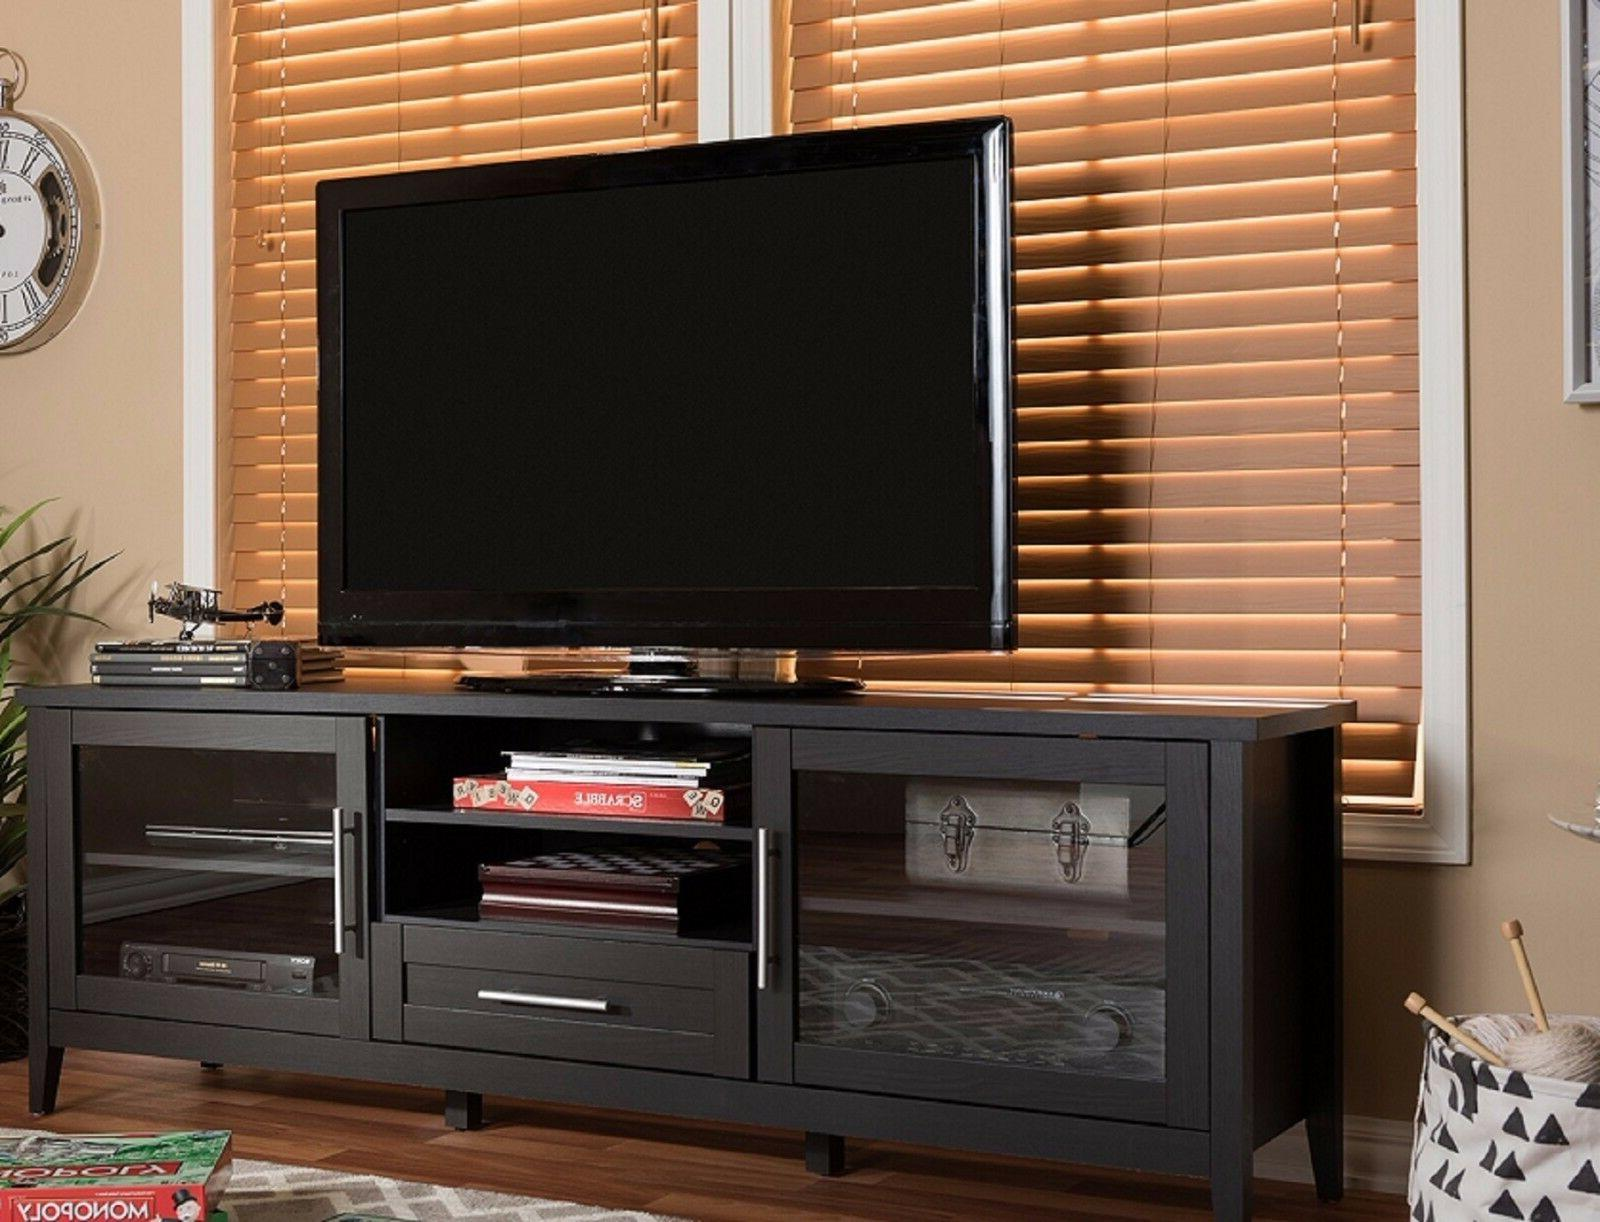 Television Media Console TV Stand Center DVD Player XBox